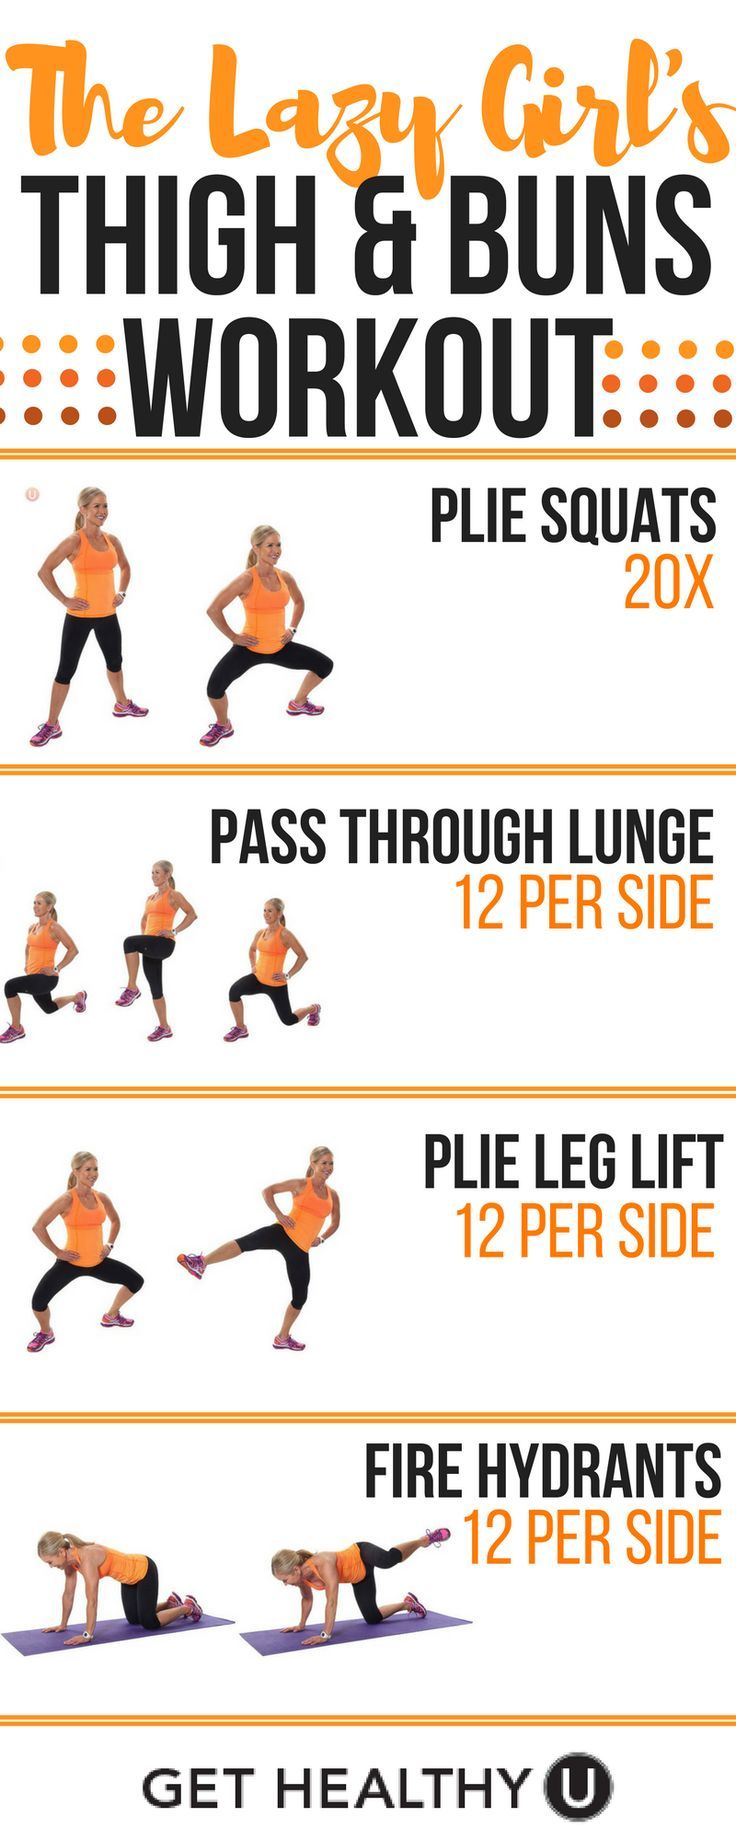 Try 4 rounds of this quick lower body booty and thigh workout in addition to your cardio to lift and firm that toosh! Check out our FREE exercise library for more exercises: http://gethealthyu.com/exercise: